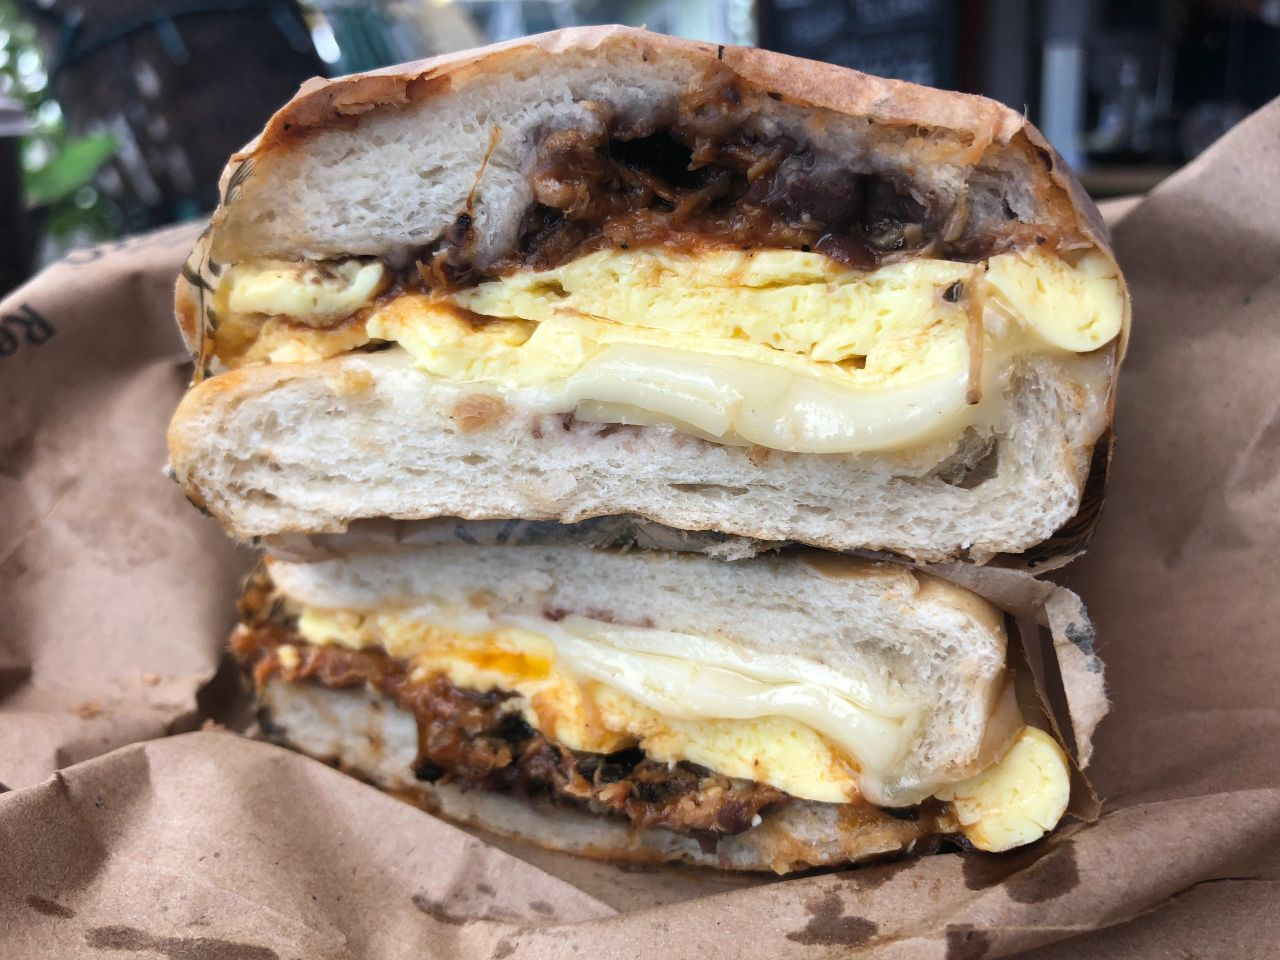 The amazing El Cubano breakfast sandwich at The Fisherman's Cafe in Key West is packed with eggs, melty Swiss cheese and three (3!) kinds of pork.